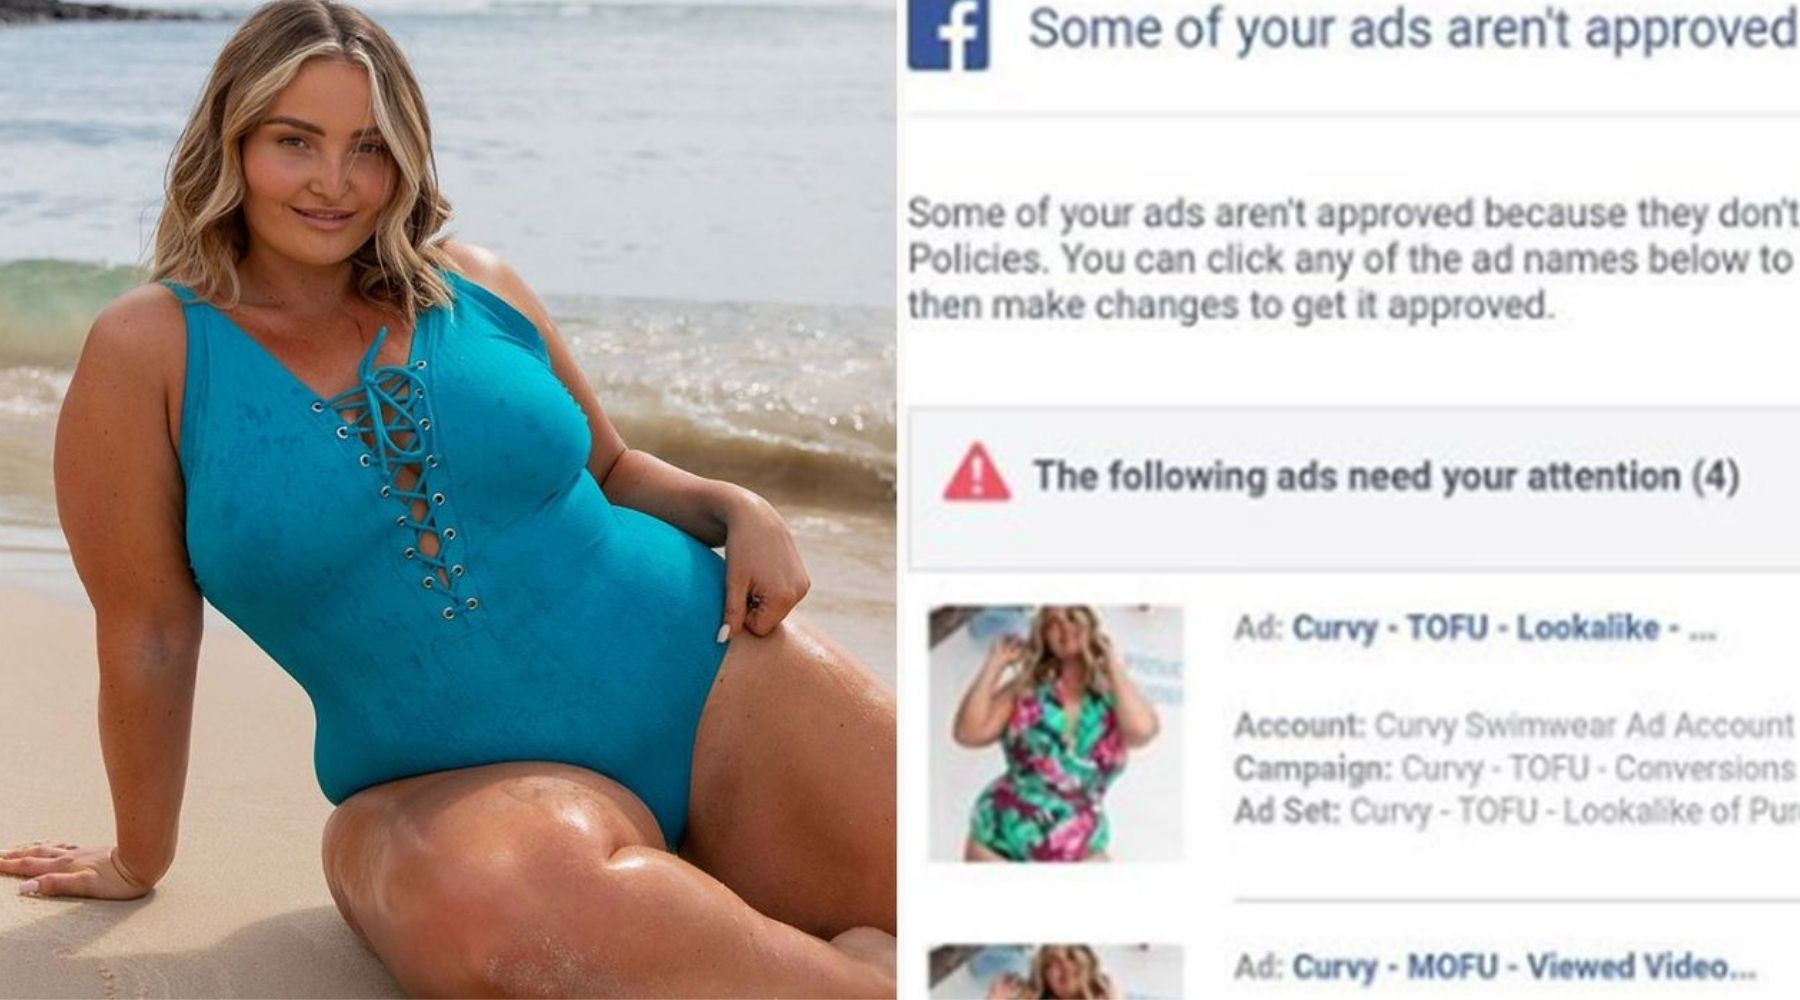 Curvy Swimwear featured in 9Honey article about rejected Facebook ads